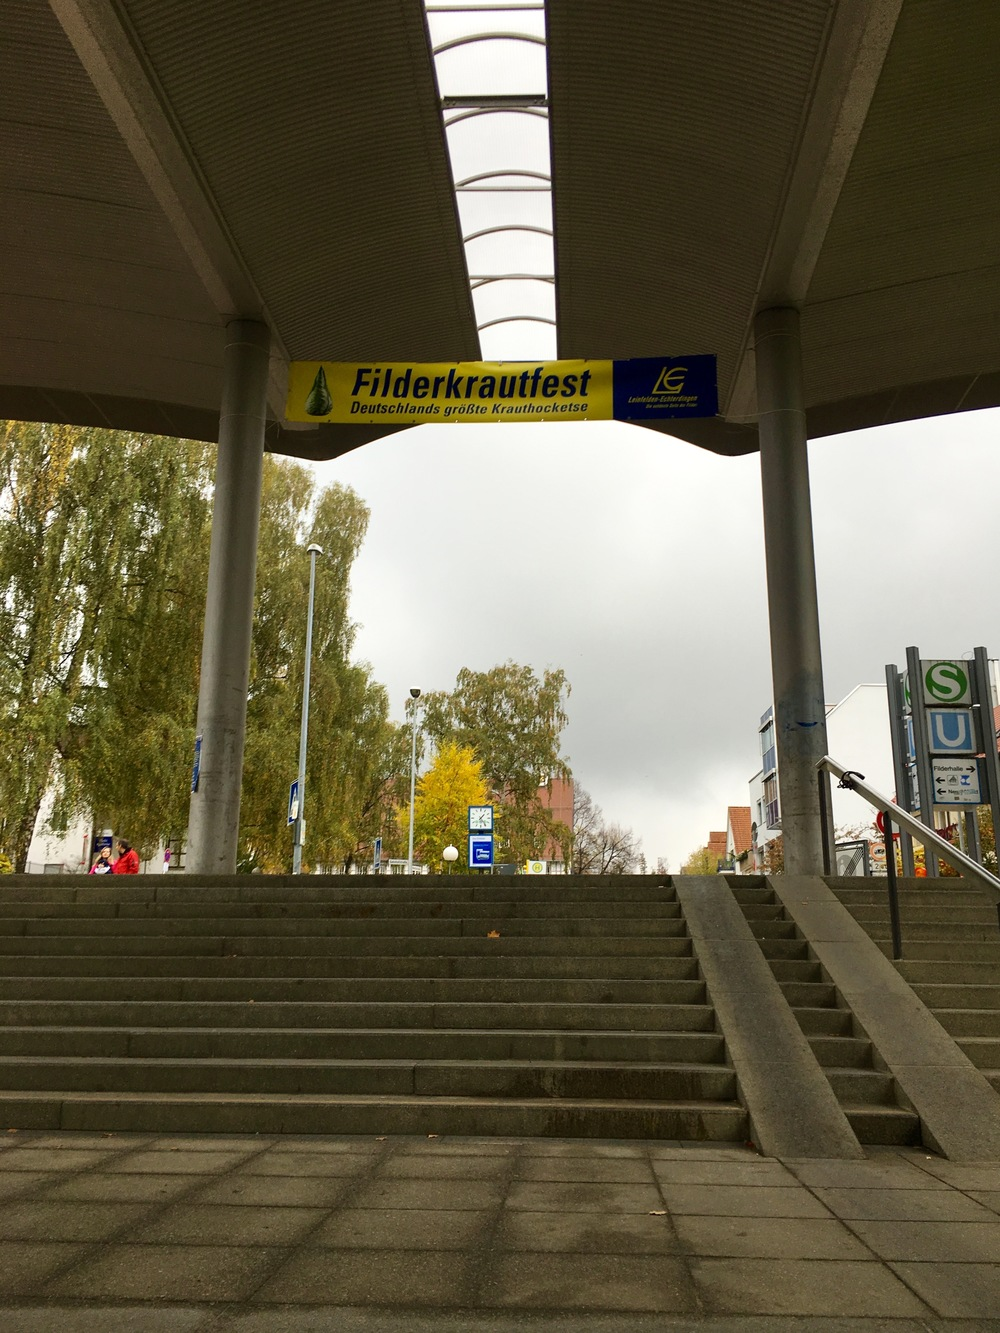 Our welcome to the festival at the  Leinfelden U-bahn  station